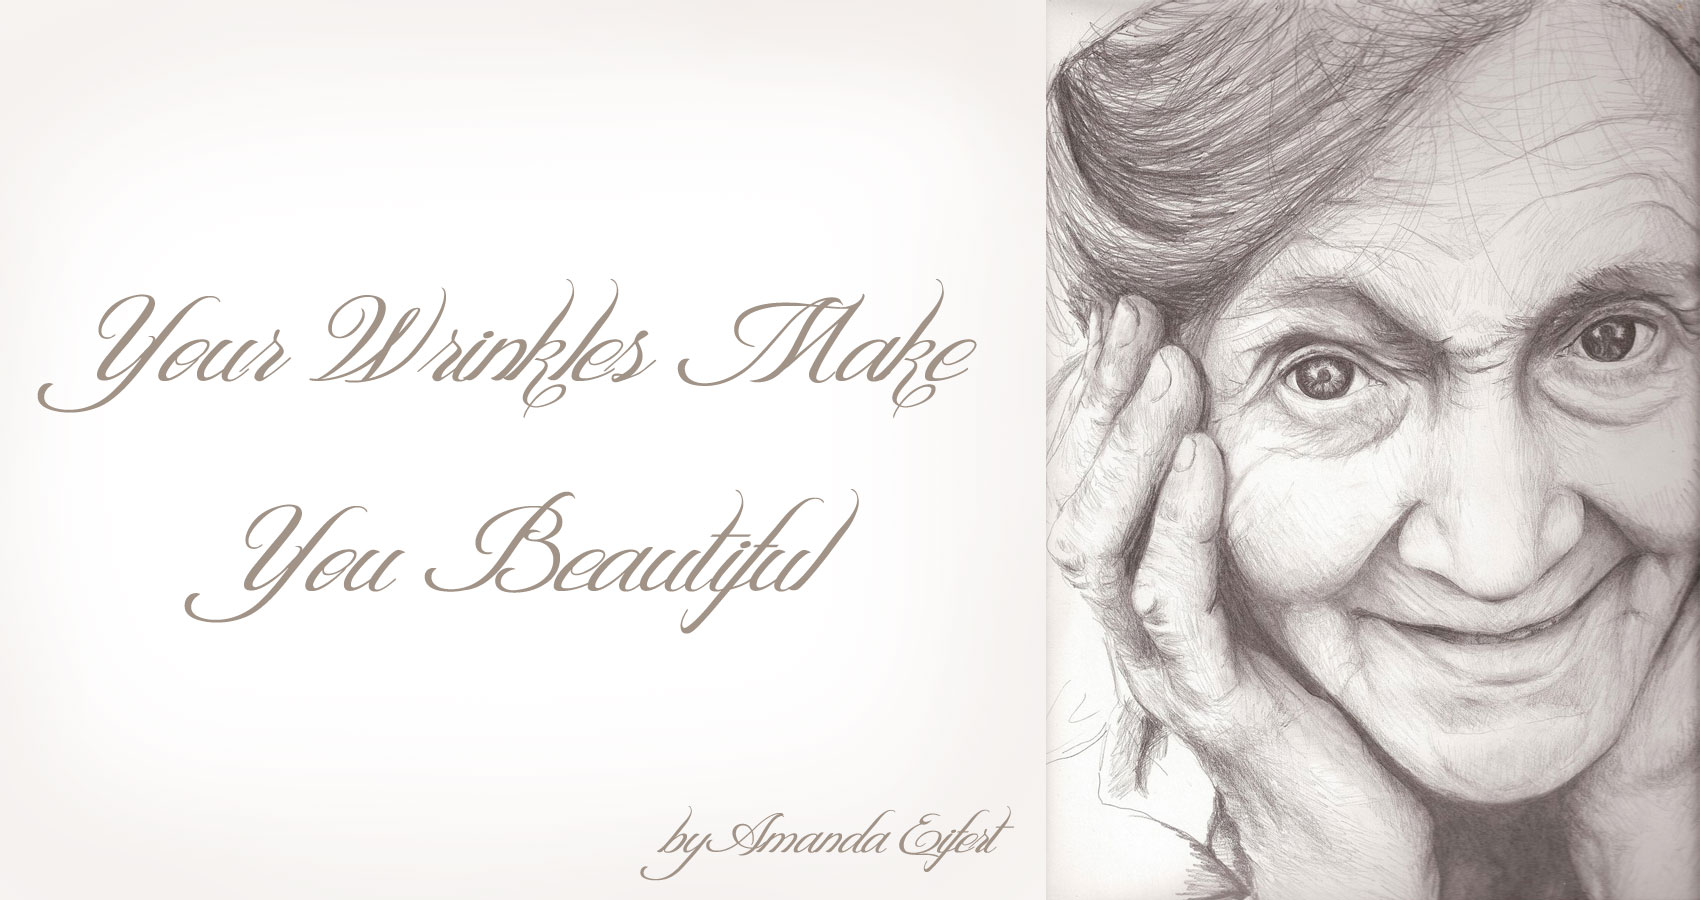 Your Wrinkles Make You Beautiful by Amanda Eifert at Spillwords.com